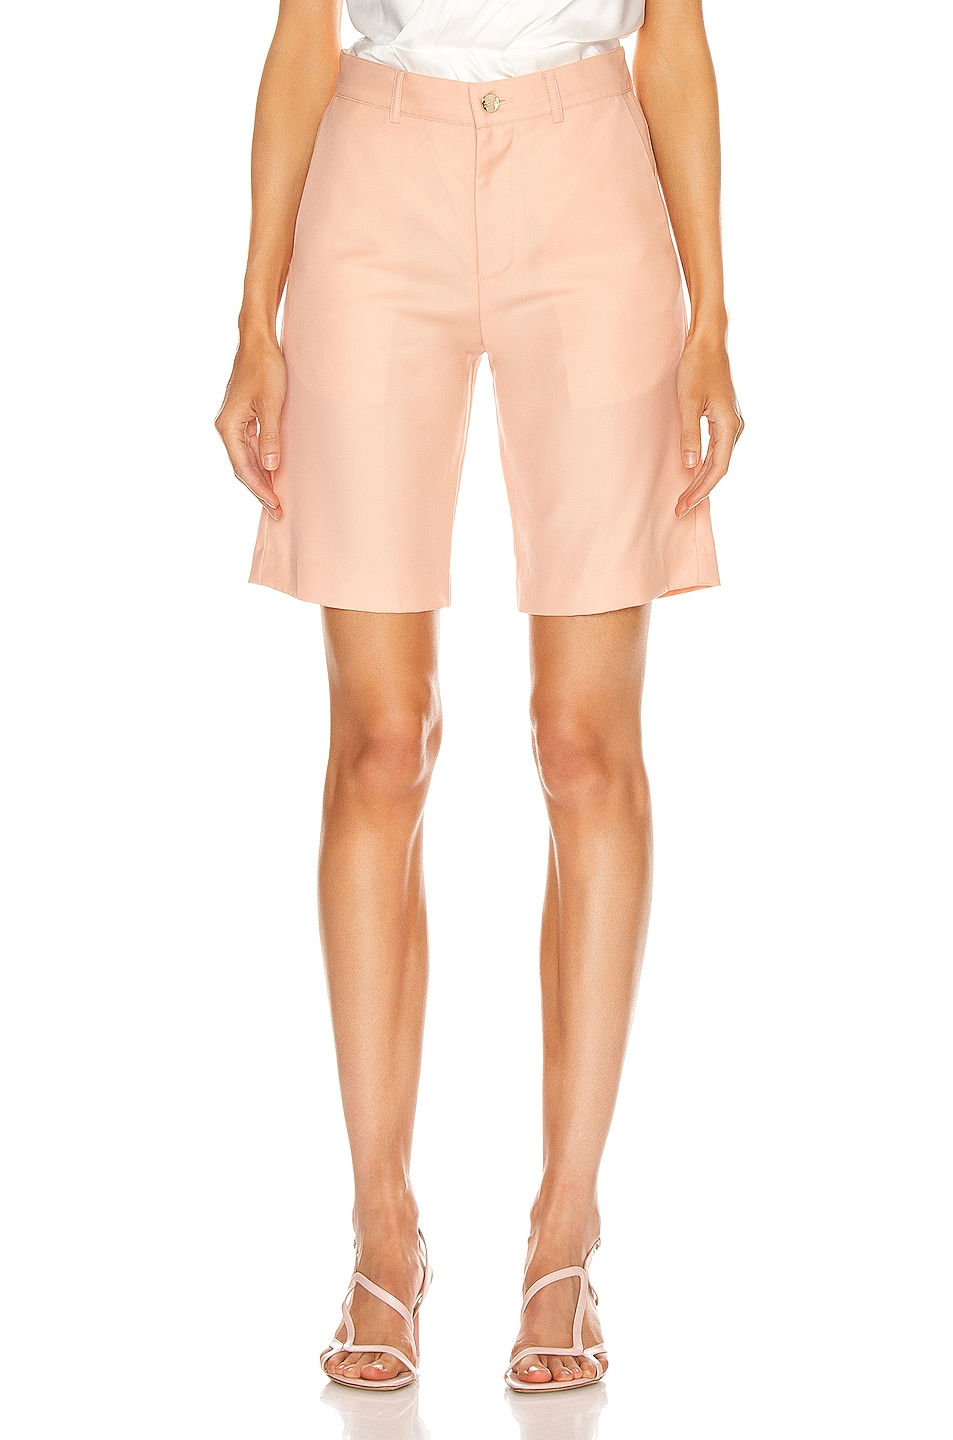 Image 1 of Maggie Marilyn Feeling Peachy Shorts in Peach